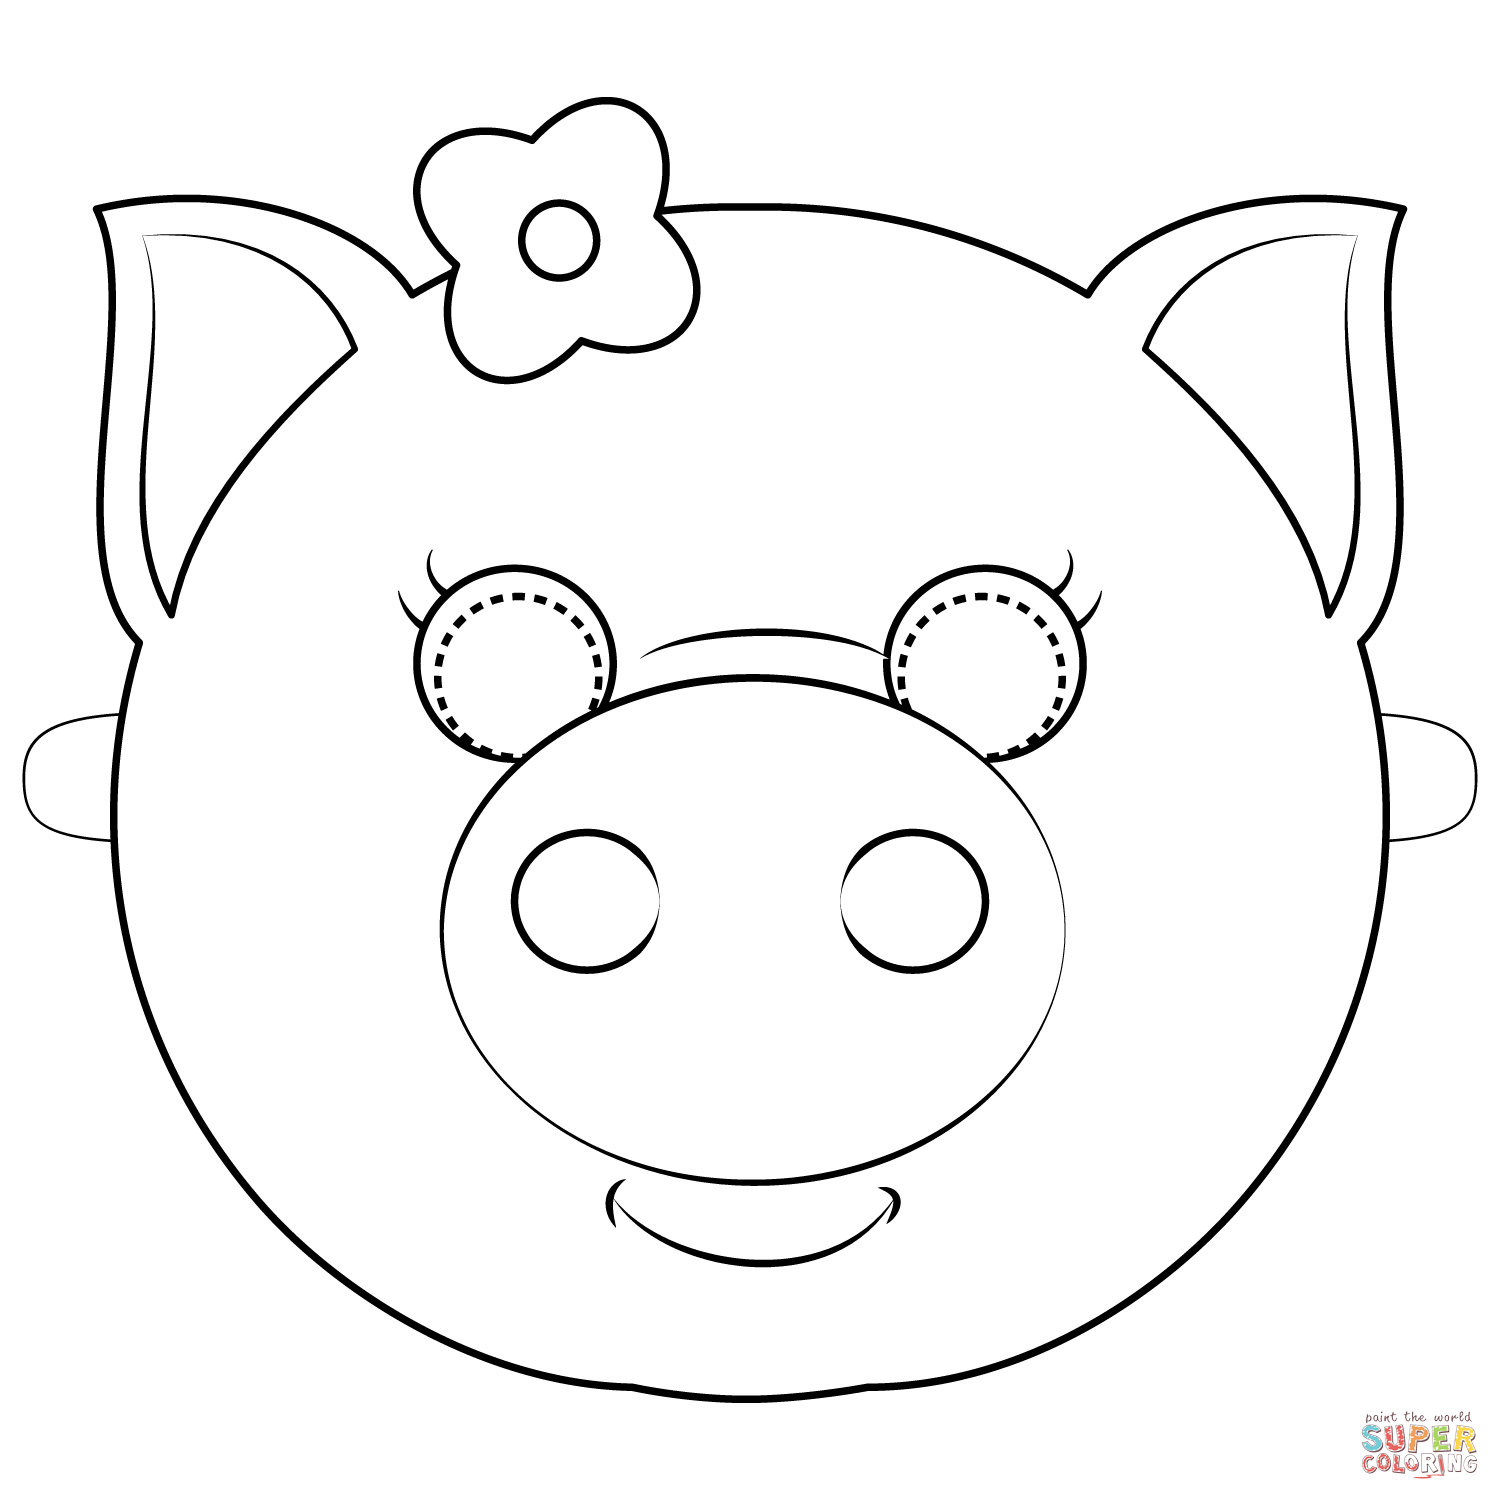 free printable pig template printable template to print color and make pig face use printable pig template free